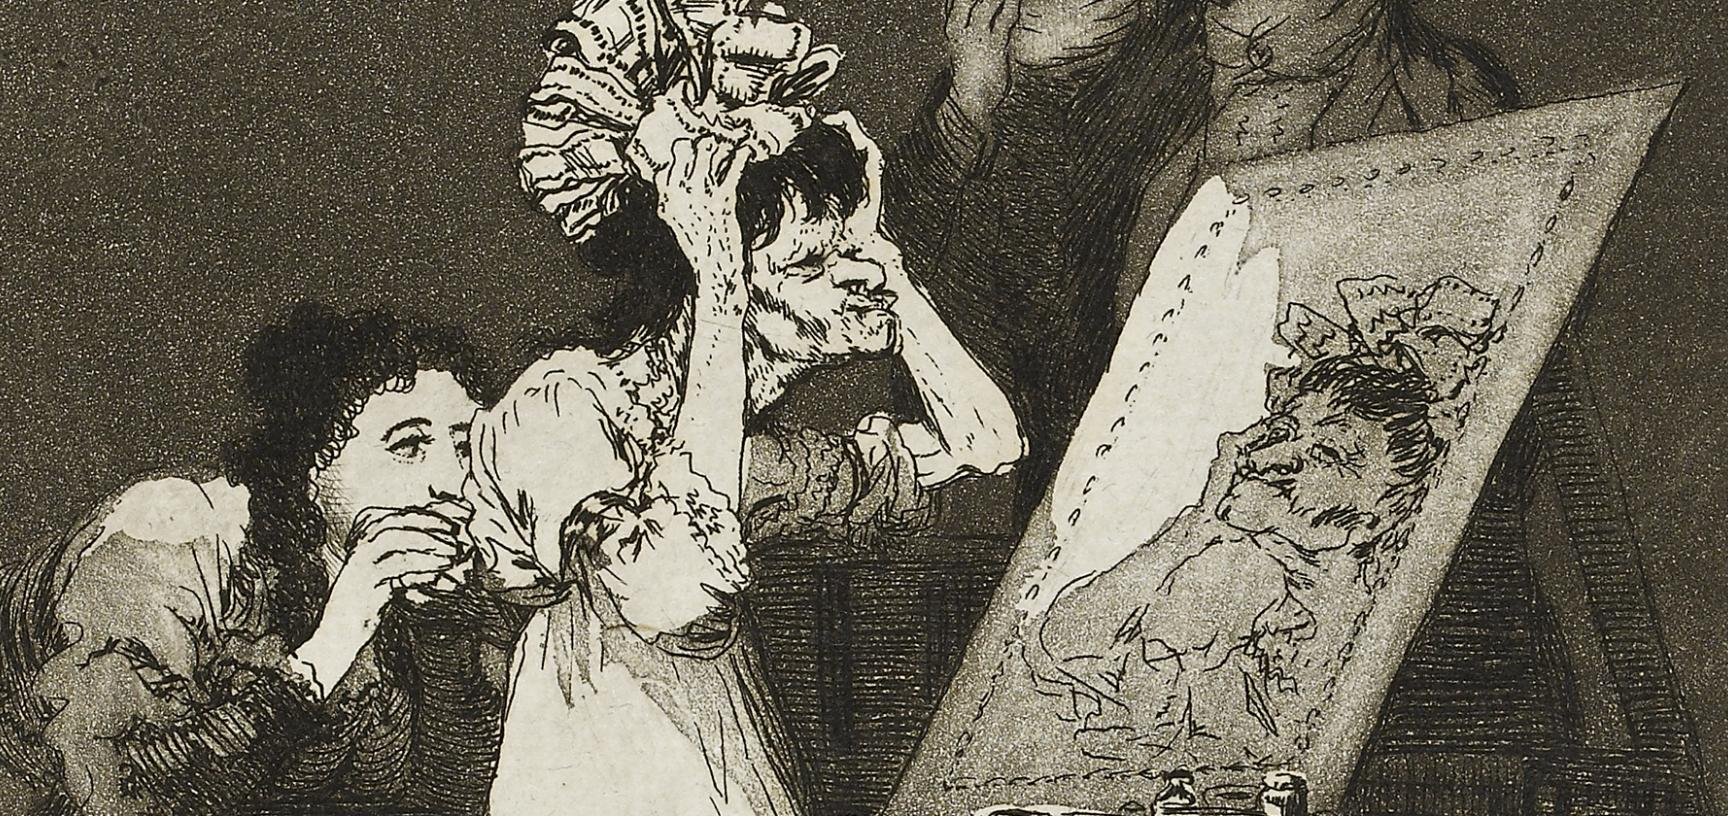 Hasta la muerte by Francisco José de Goya y Lucientes (detail)